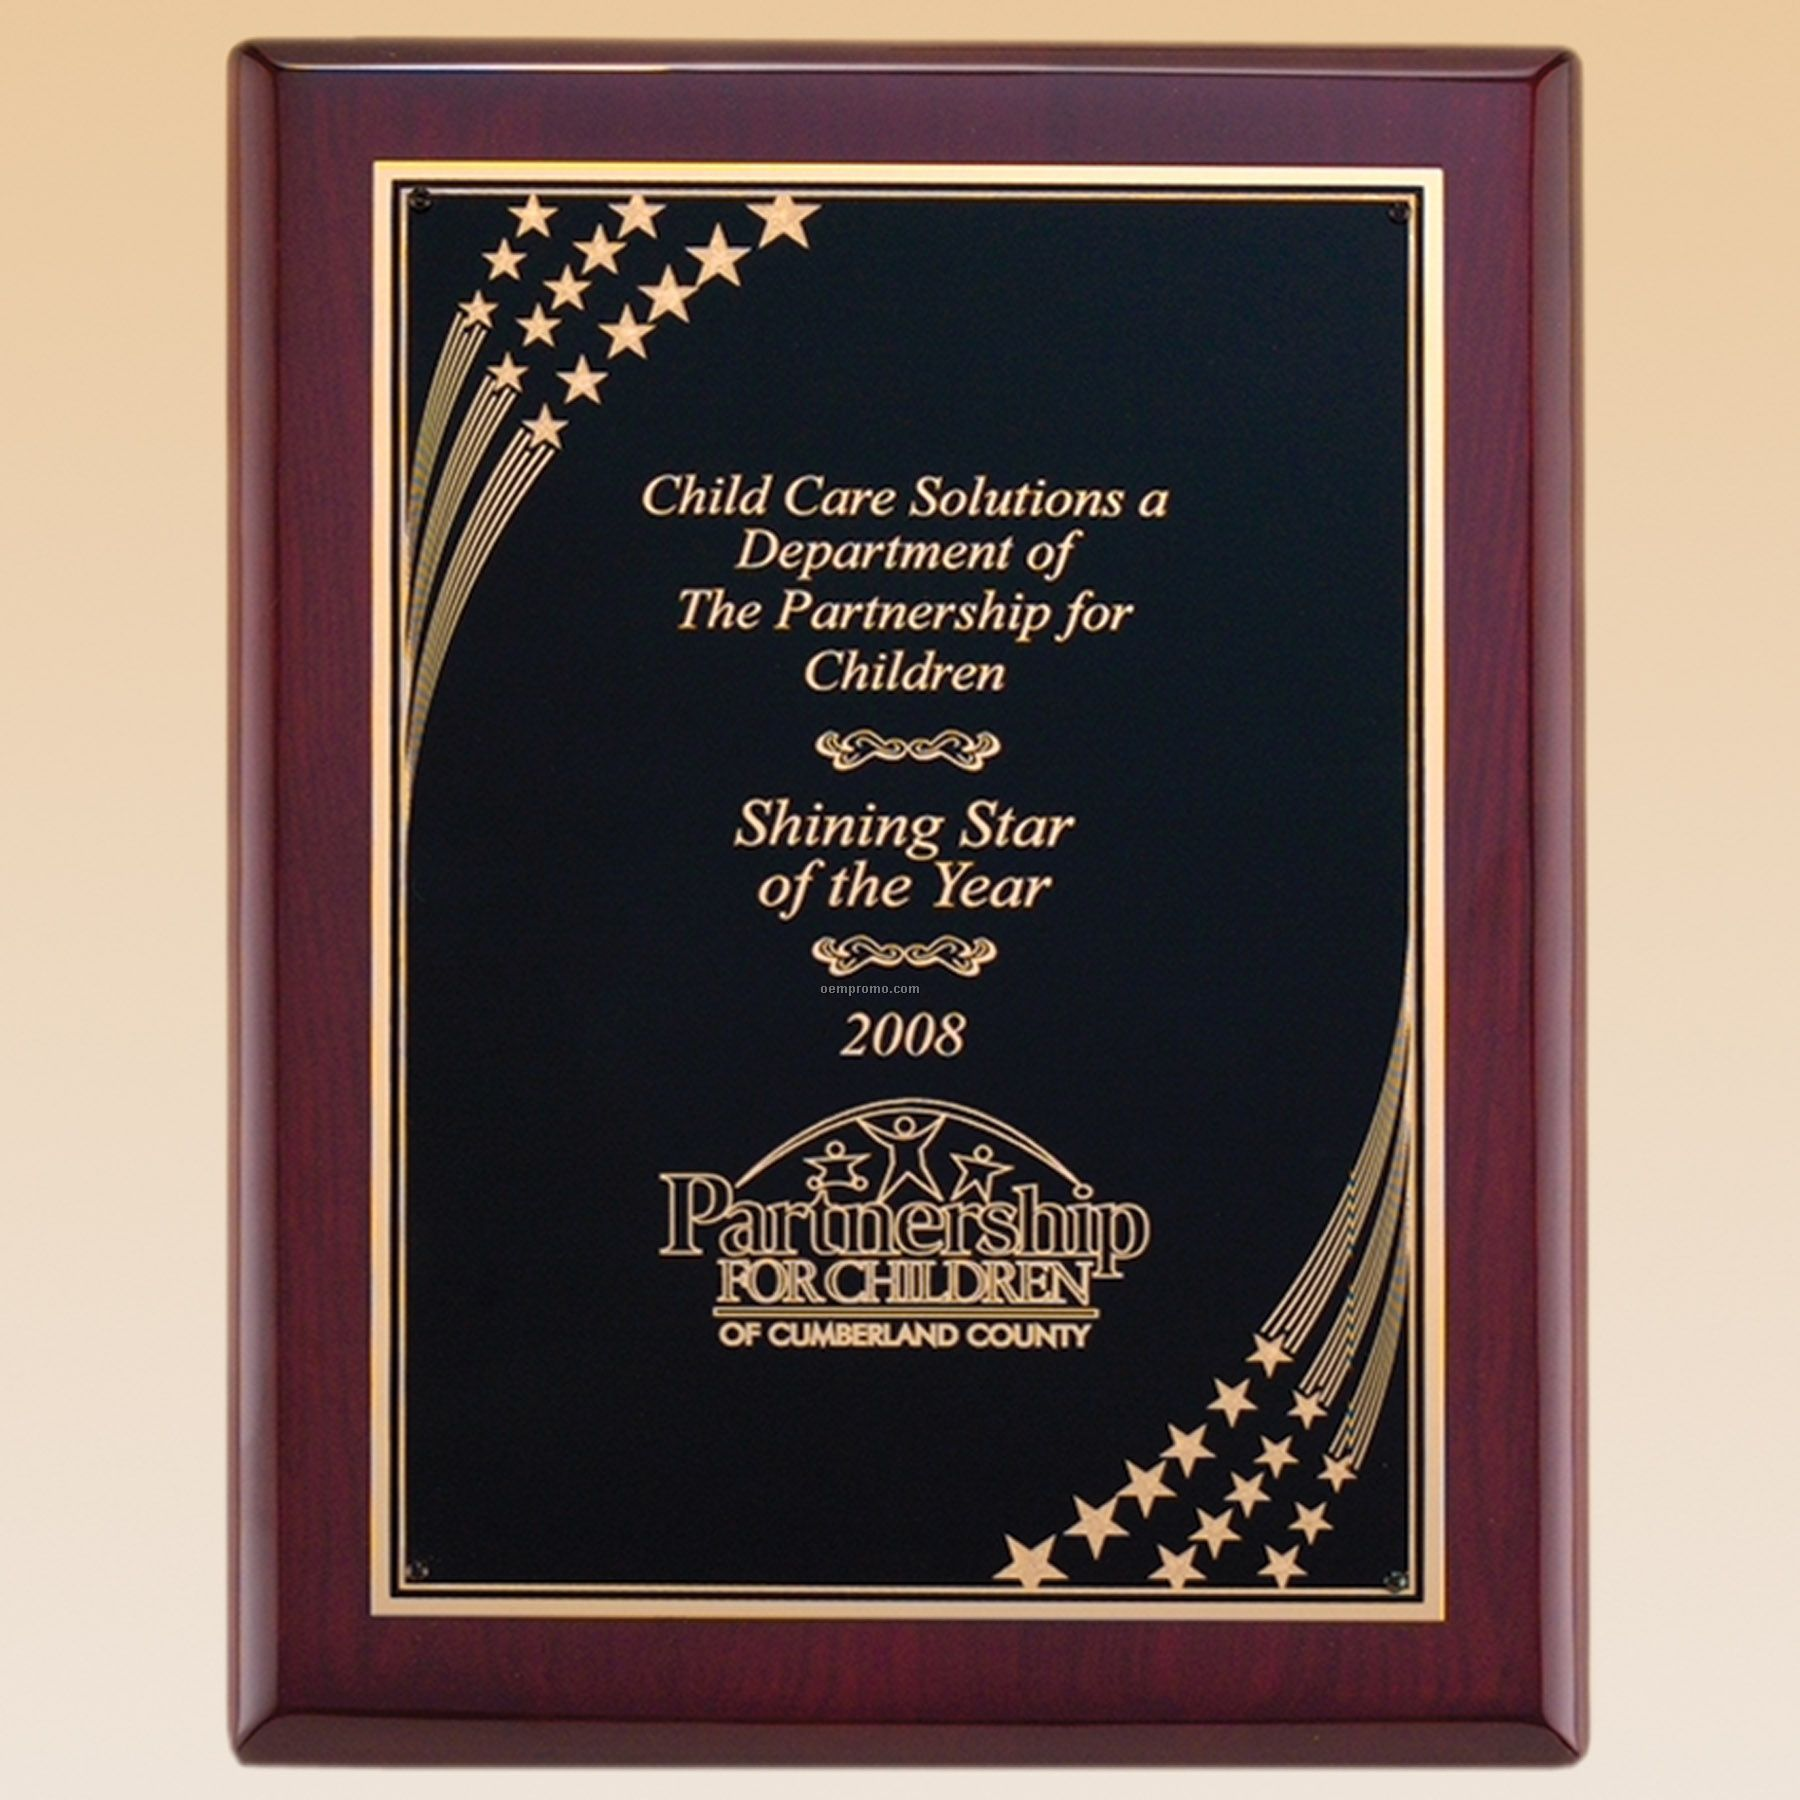 Rosewood Piano Finish Plaque W/ Star Shower Engraving Plate